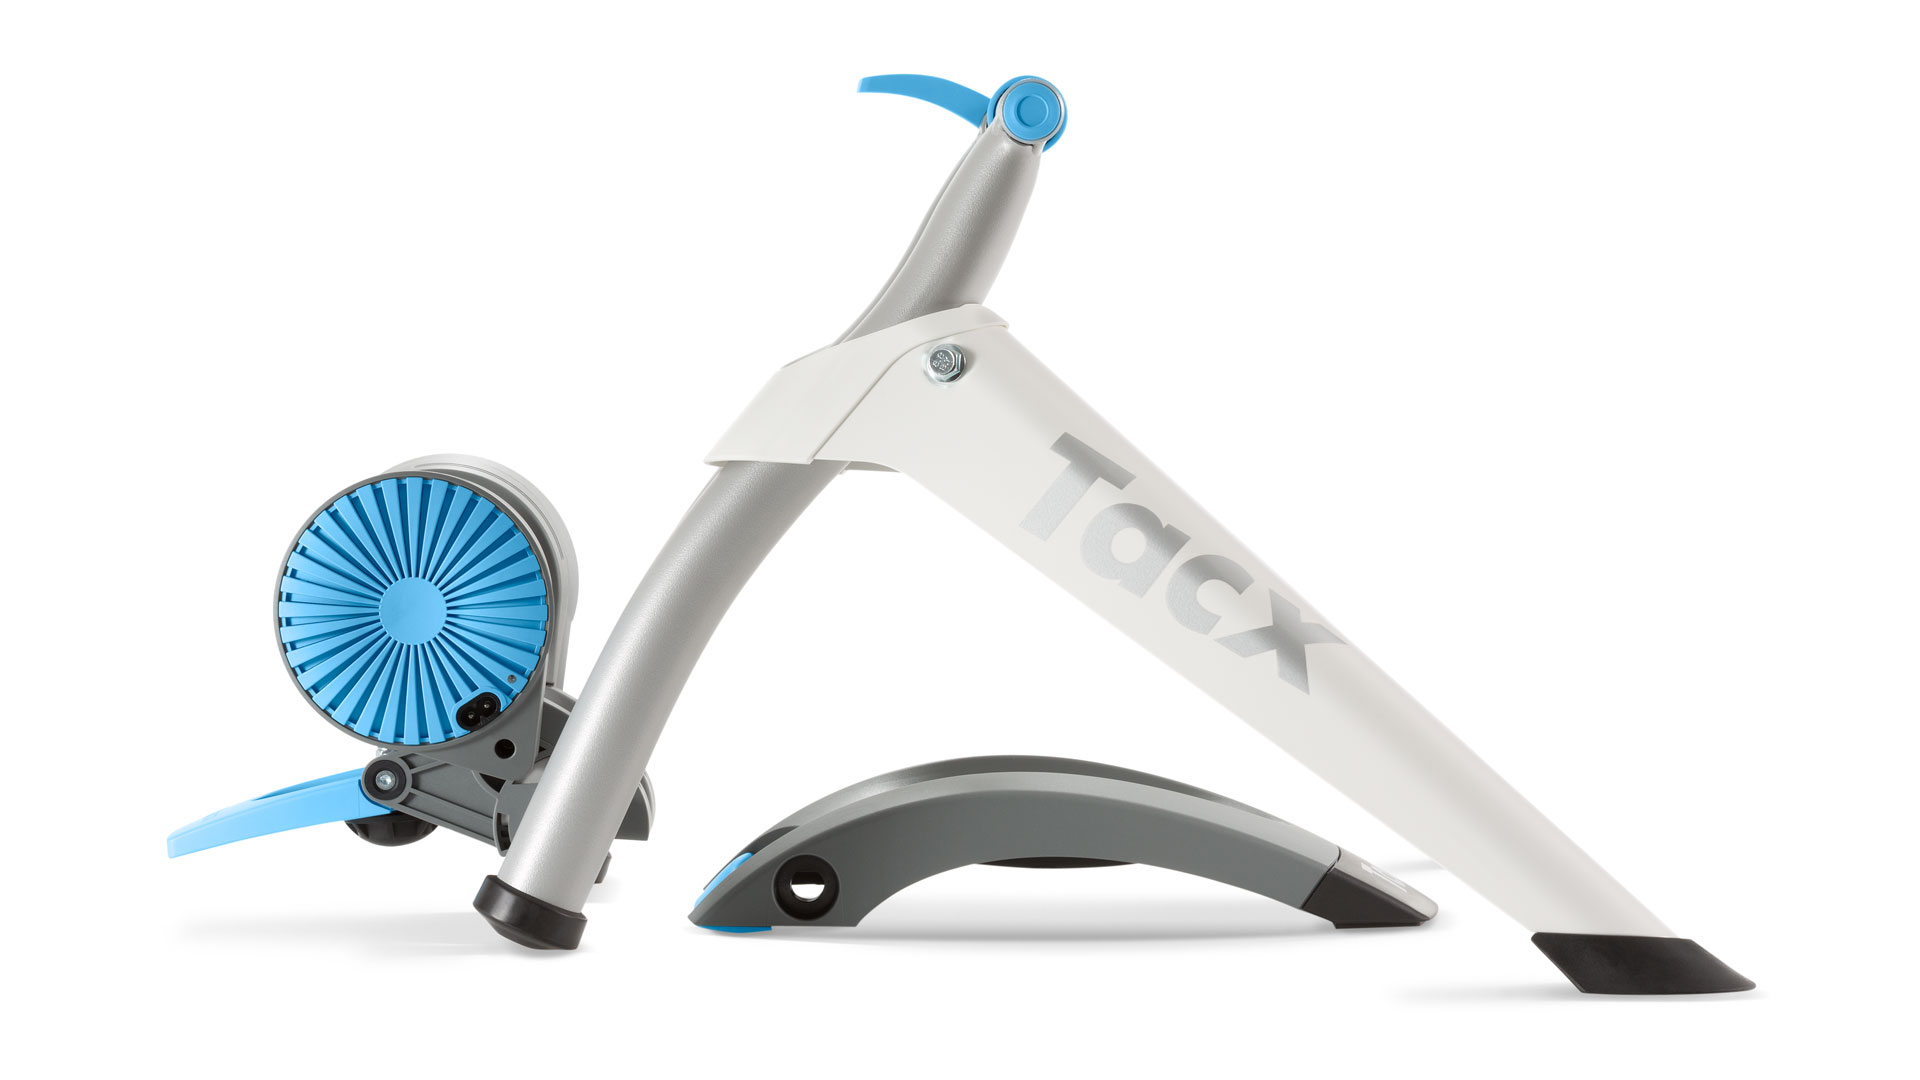 Tacx - Vortex Smart Trainer - Bild 2